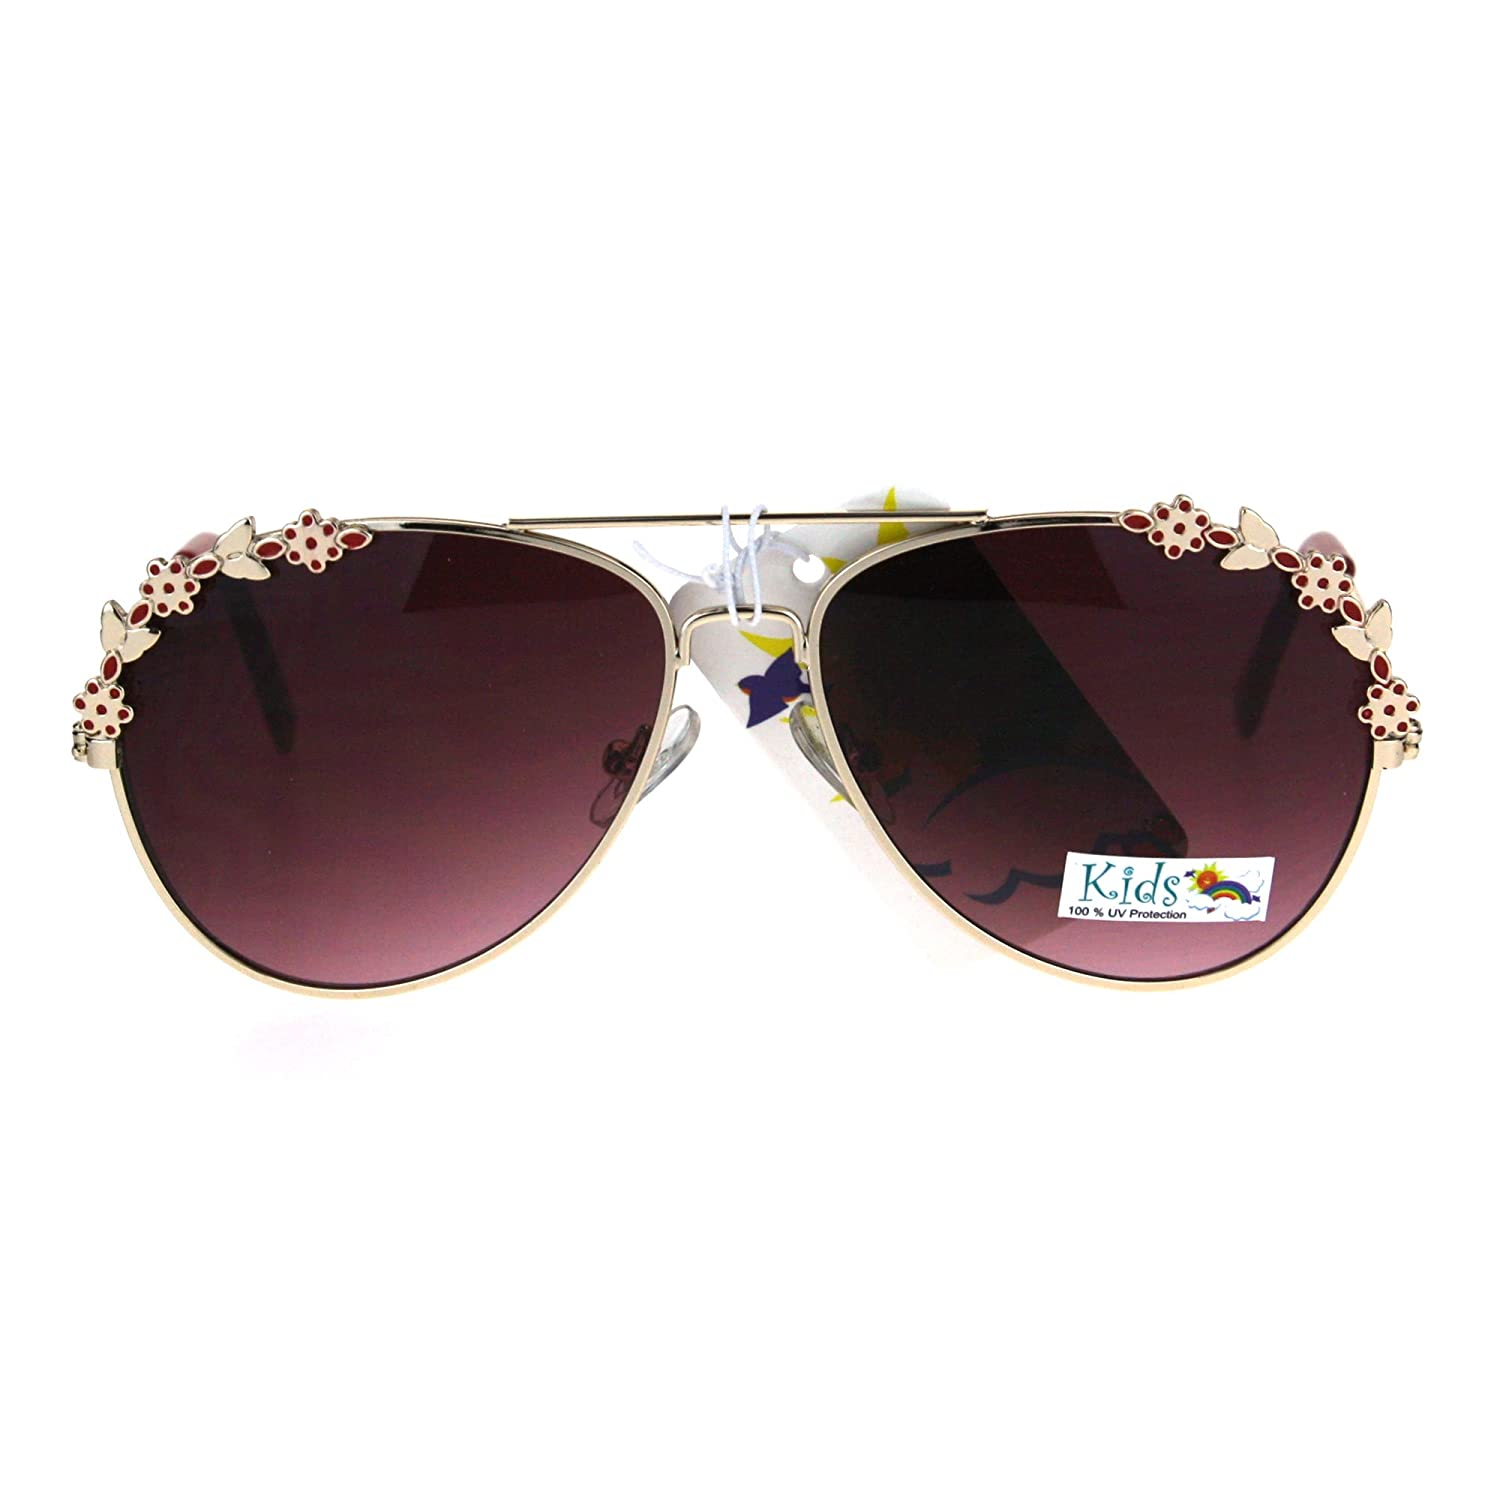 Girls Aviator Sunglasses Floral Flower Design Metal Frame UV 400